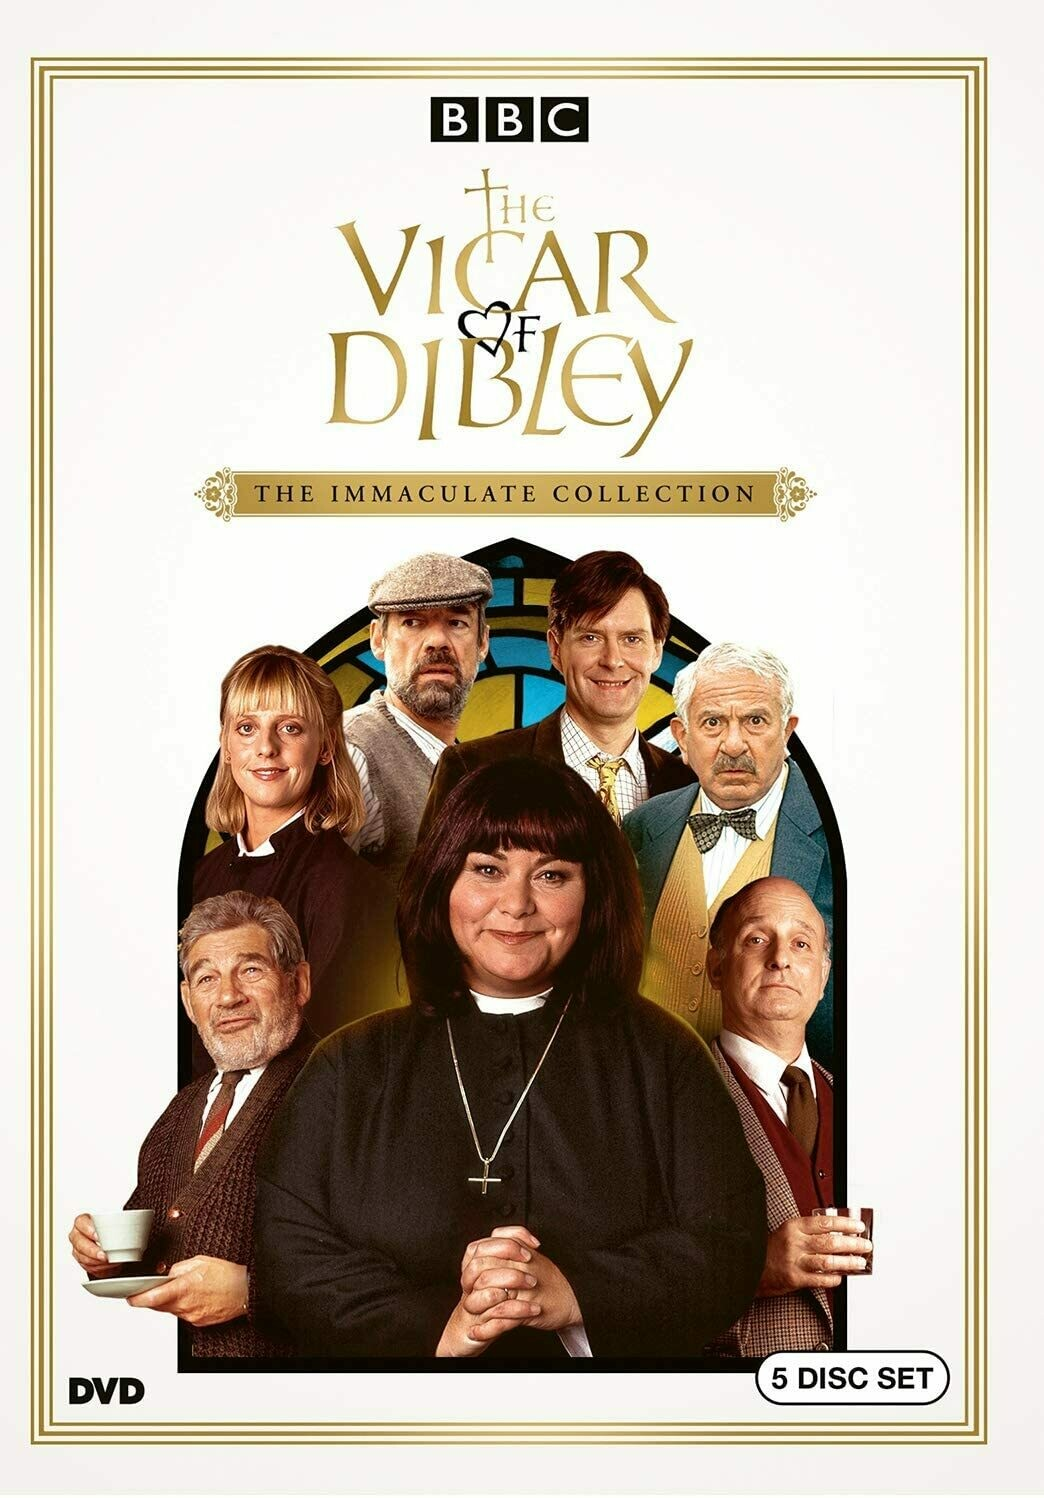 Vicar Of Dibley: The Immaculate Collection (7 day rental)